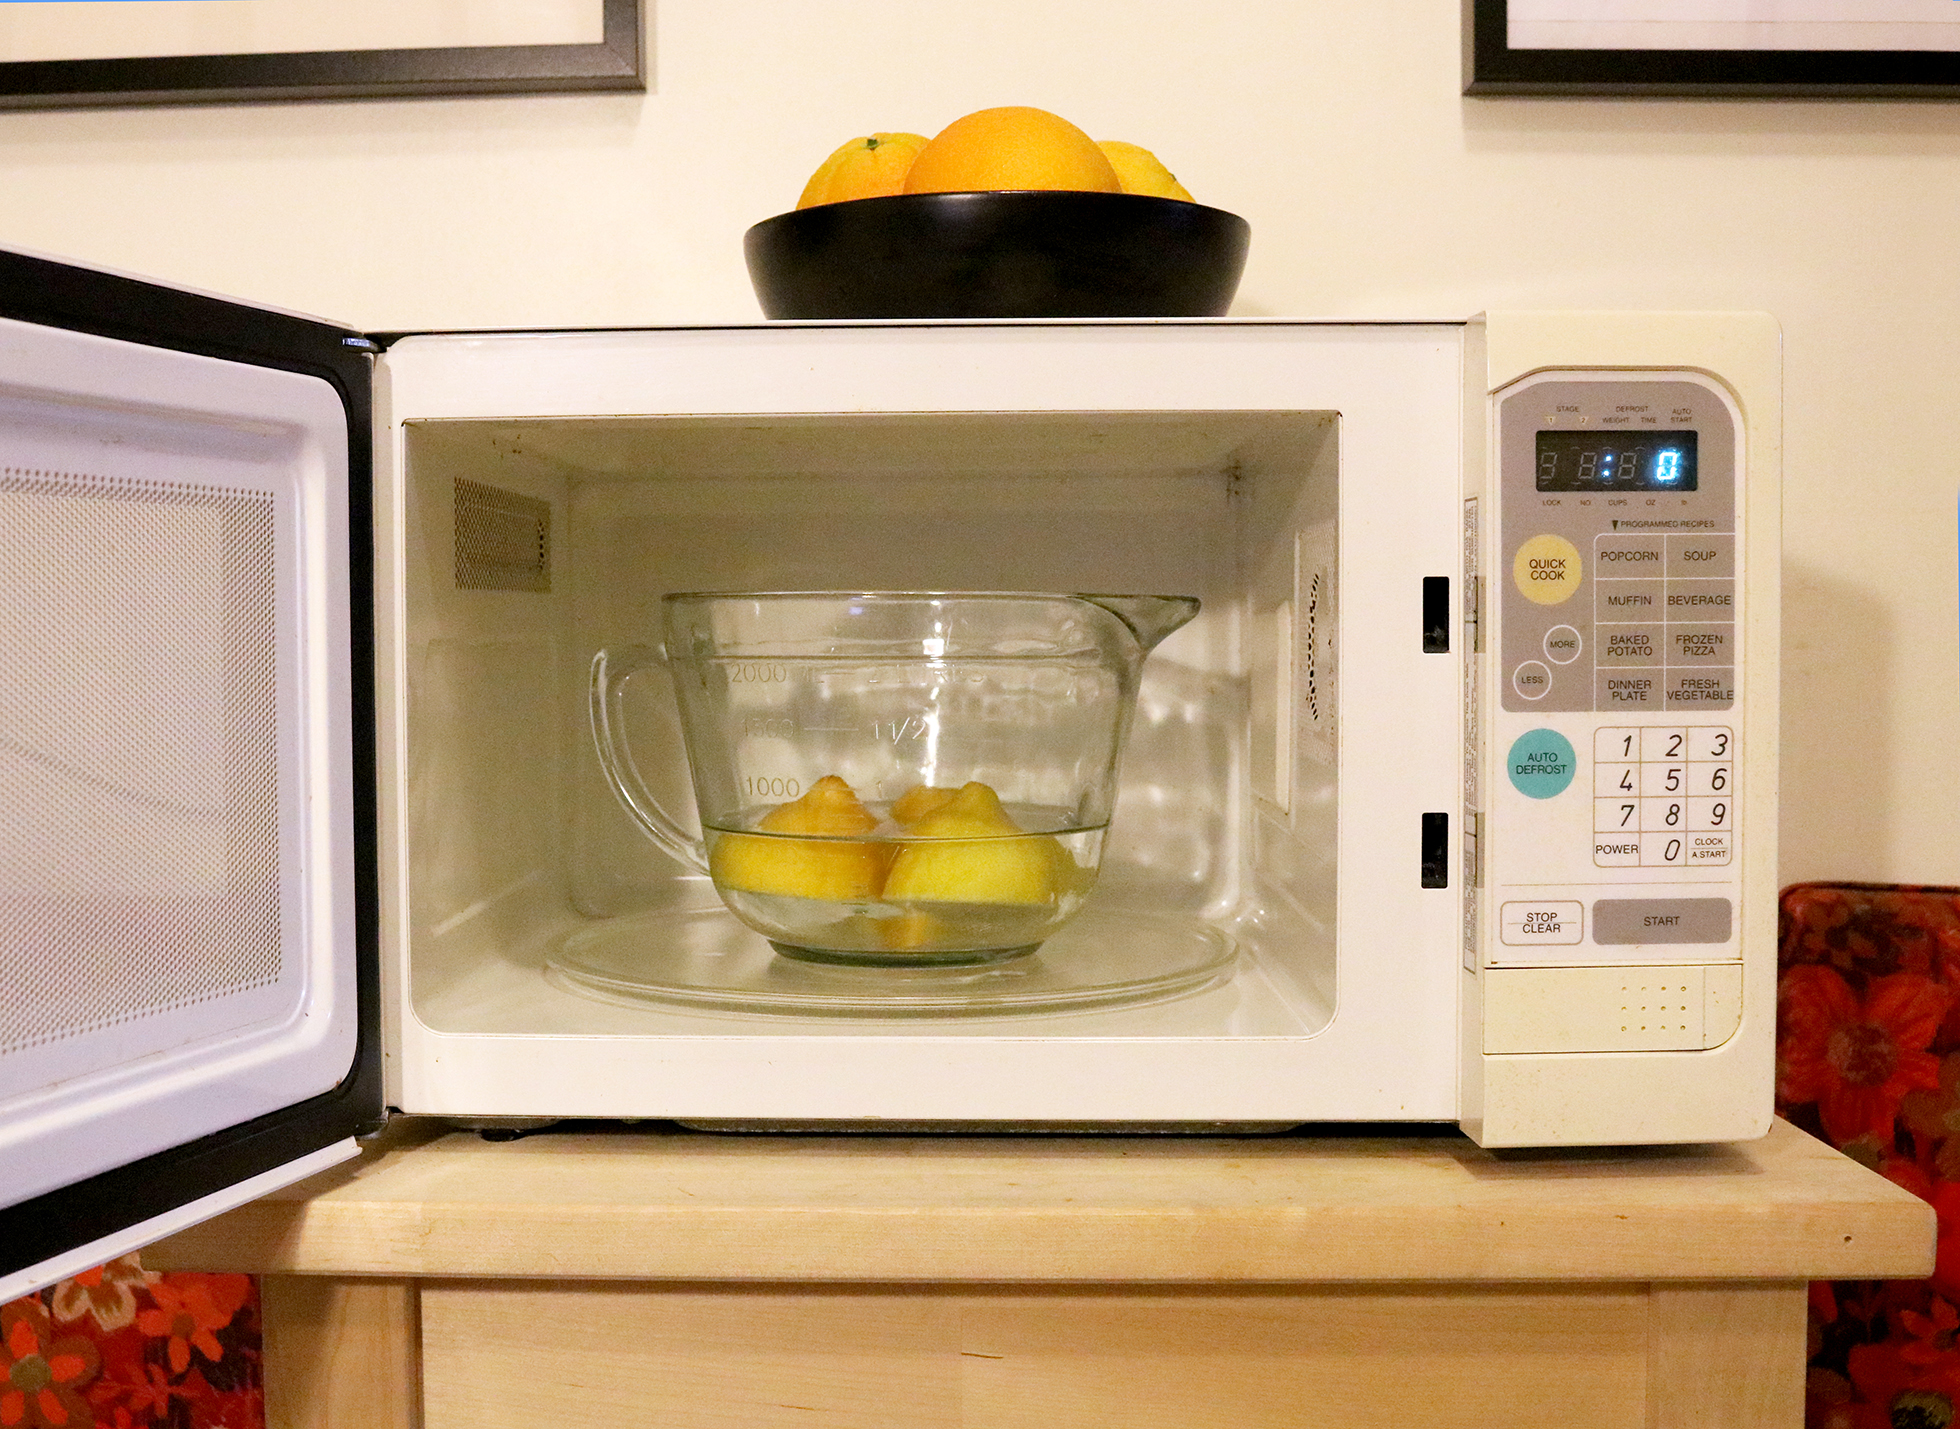 Three lemons in a bowl of water inside a microwave